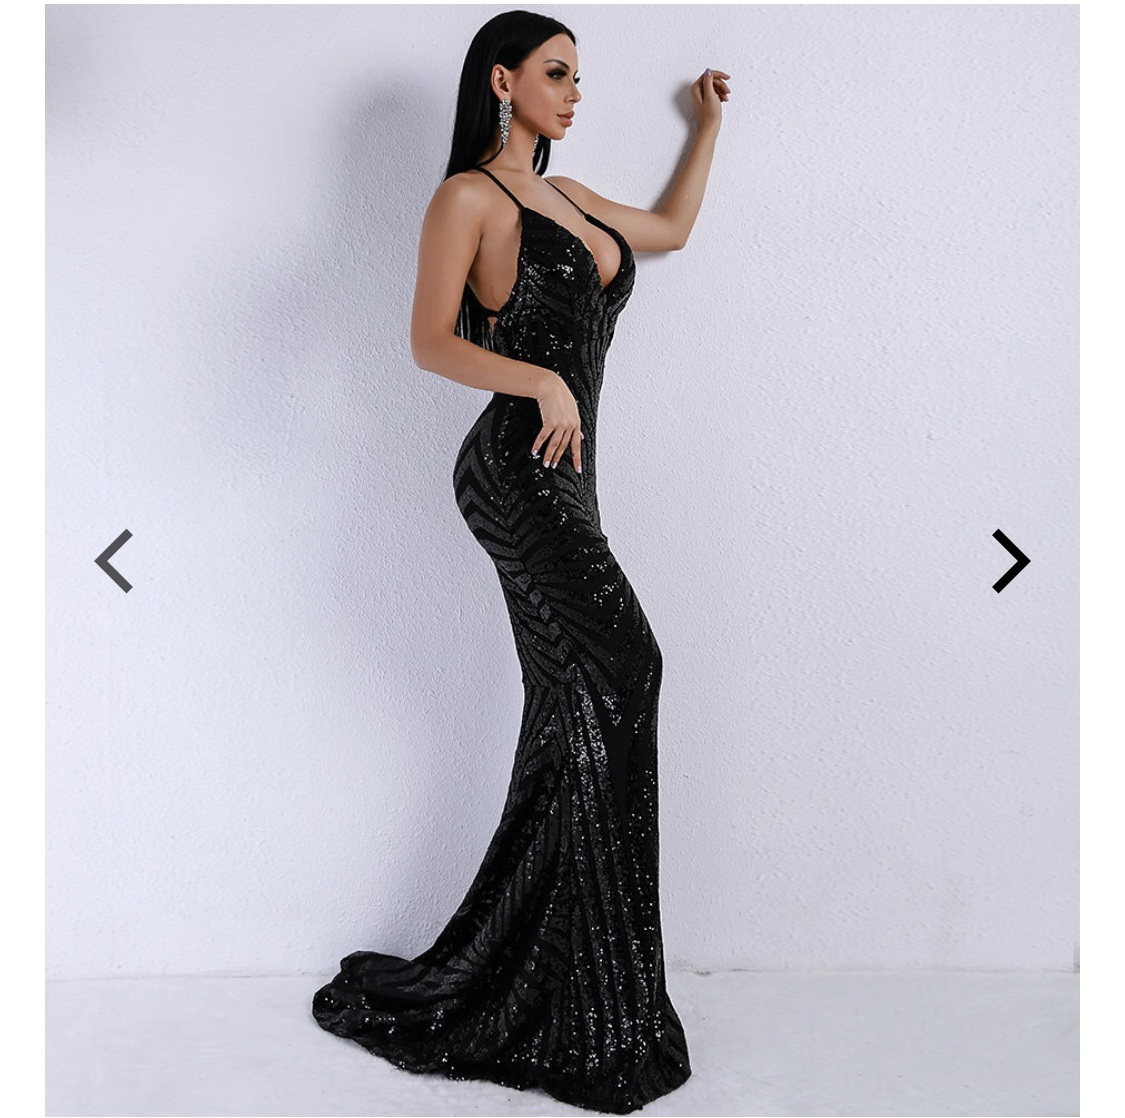 dress black sequins gown strapless black dress long black dress formalwear long evening dress prom dress